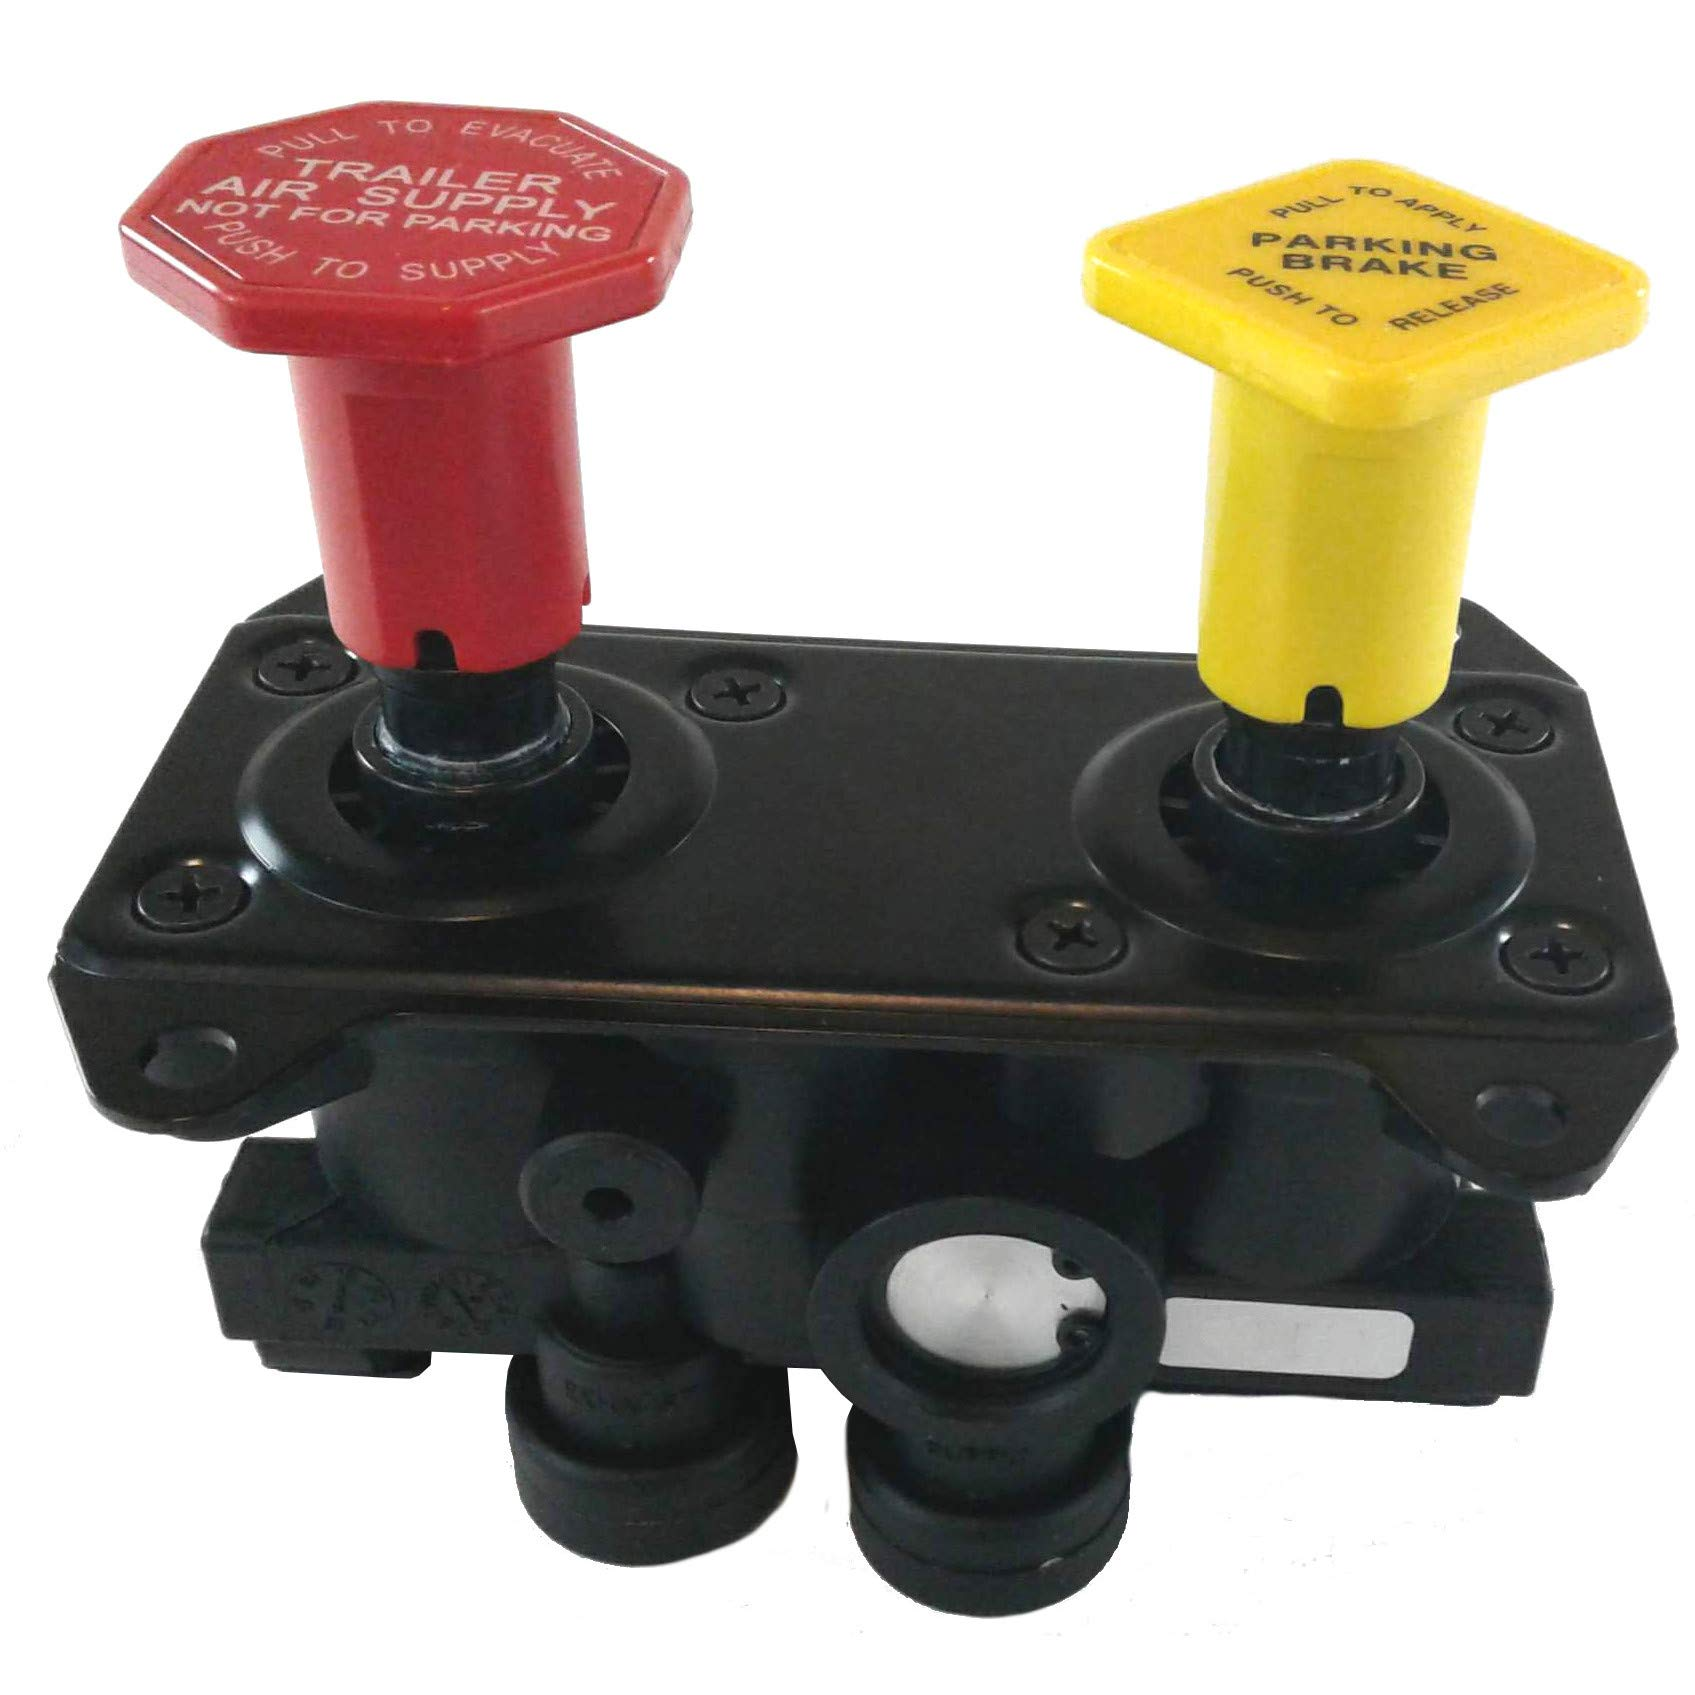 MV-3 Style Hand Operated Parking Manifold Dash Control Module Valve for Heavy Duty Big Rigs